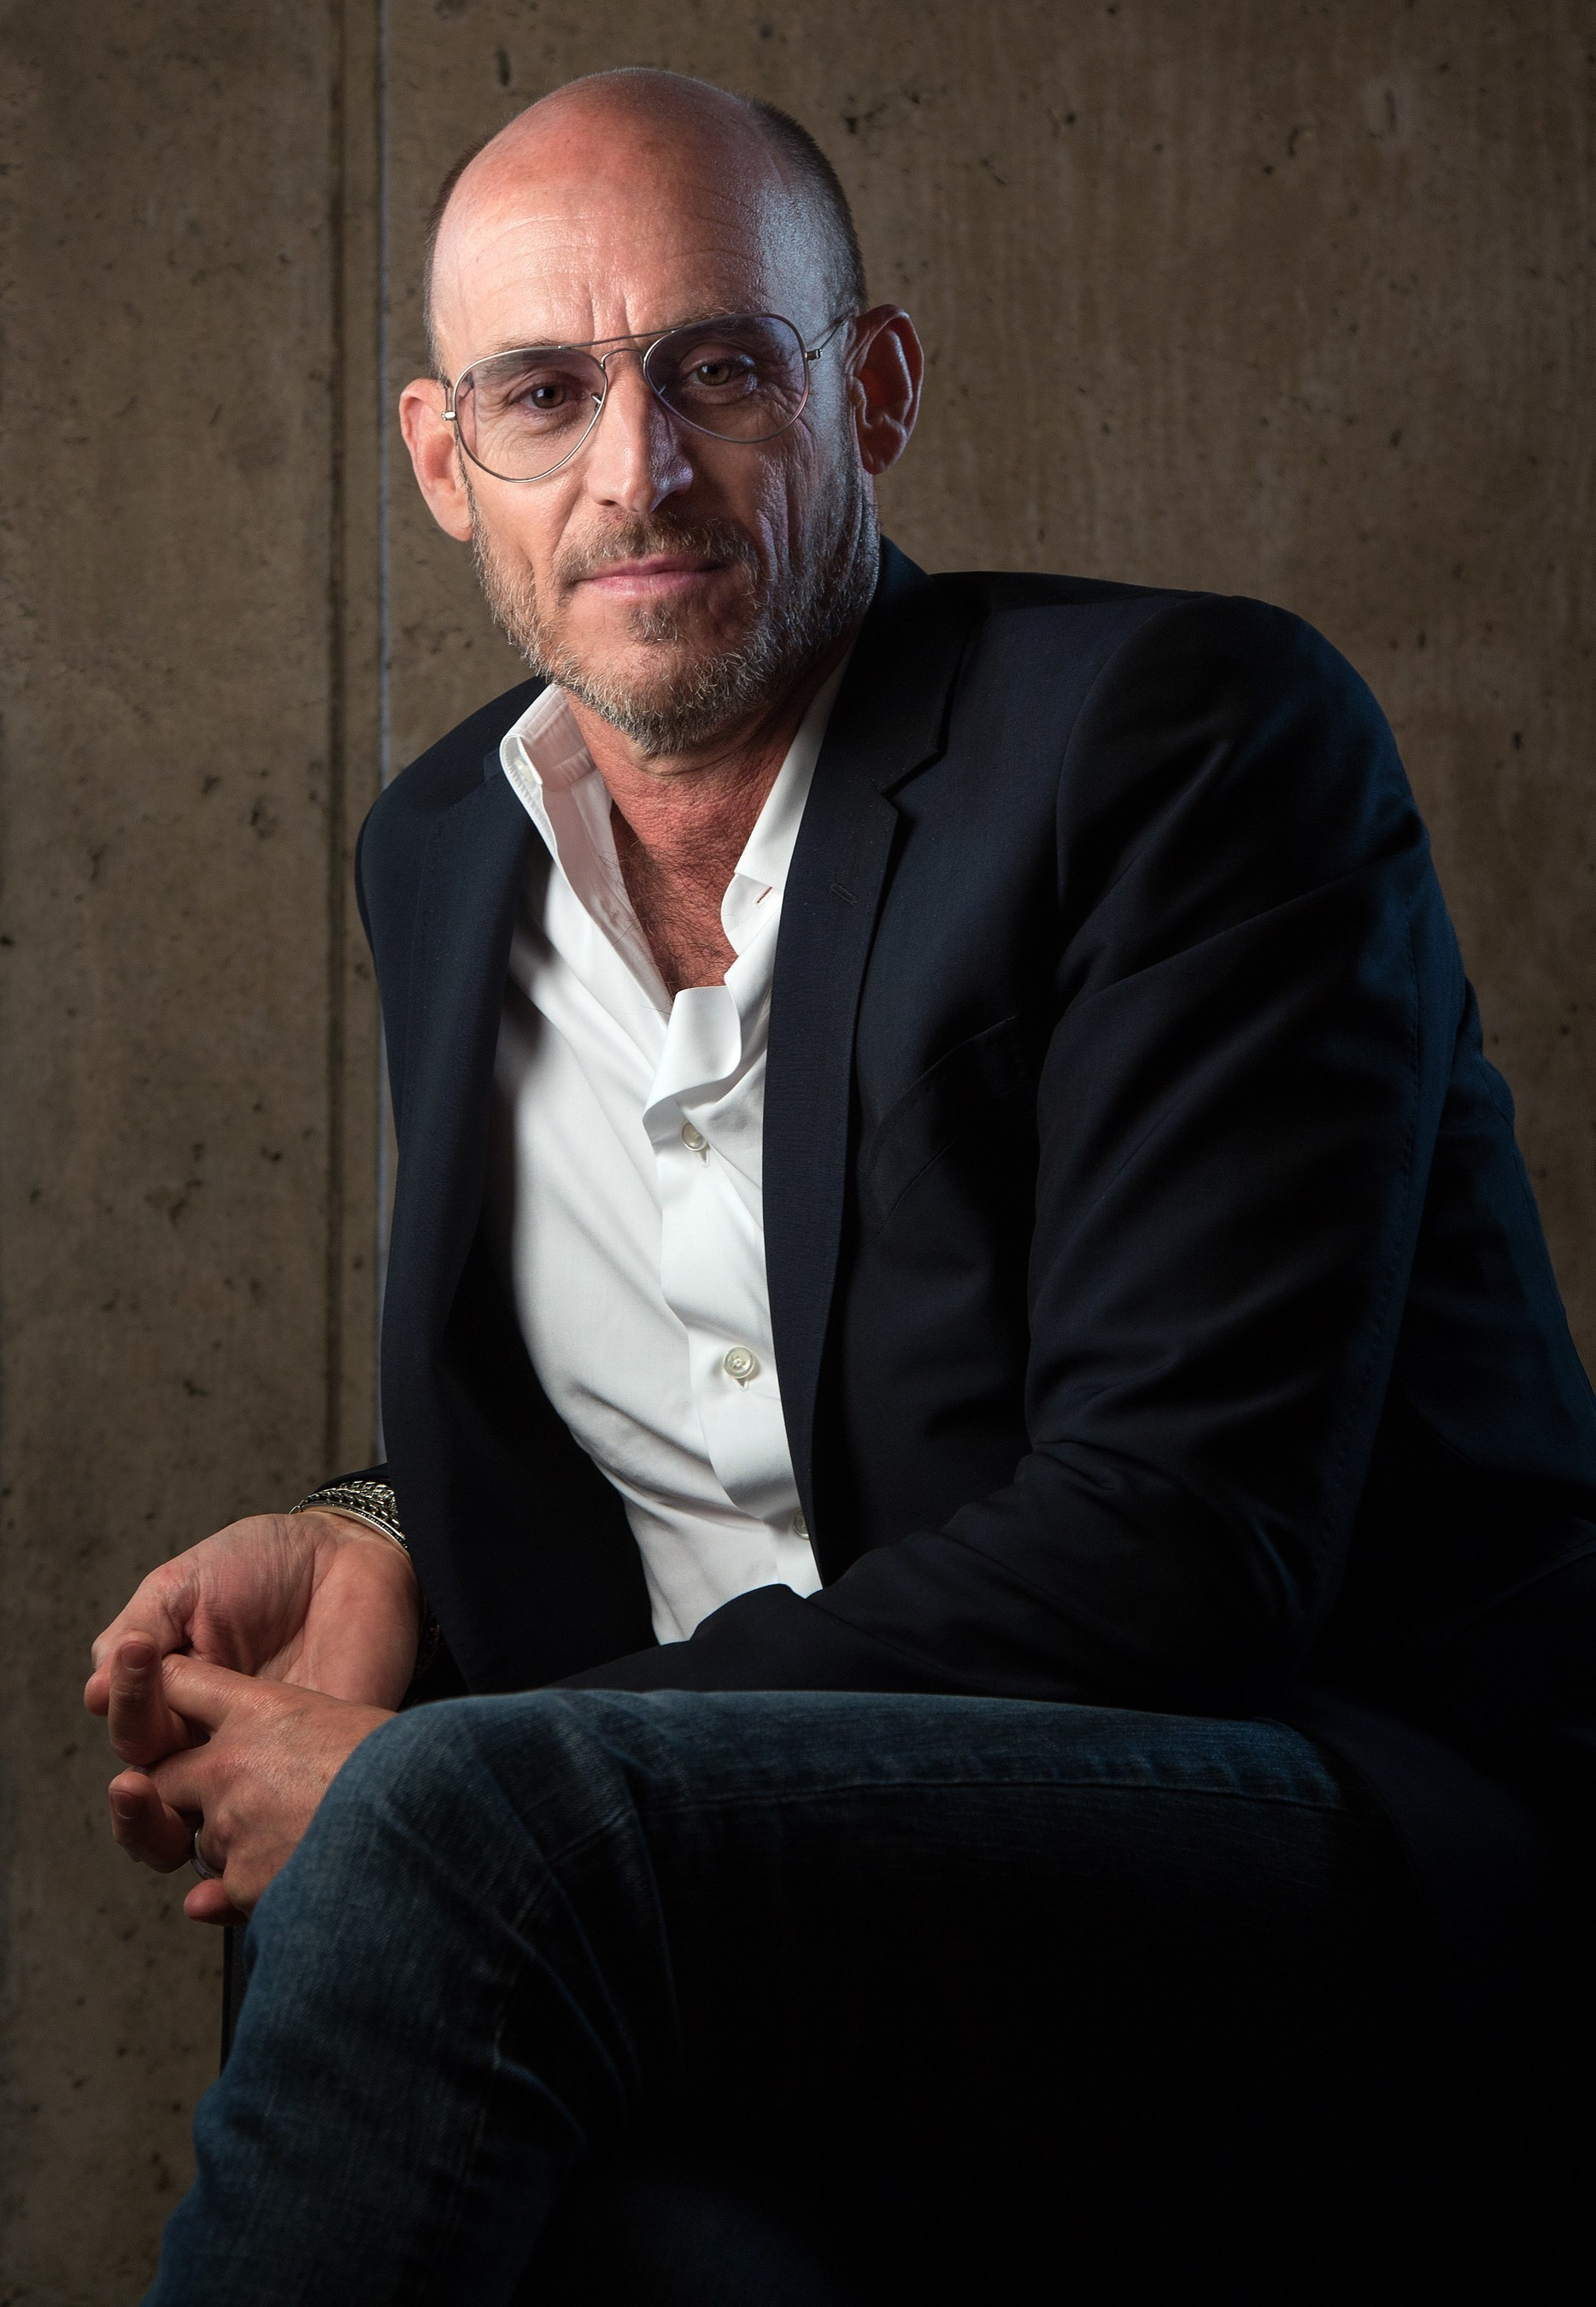 Ted Waitt, chairman of the Waitt Foundation and cofounder of Gateway, Inc., a pioneer in the direct marketing of personal computers, has been named chairman of the Salk Institute for Biological Studies' Board of Trustees. He assumes his new role immediately.